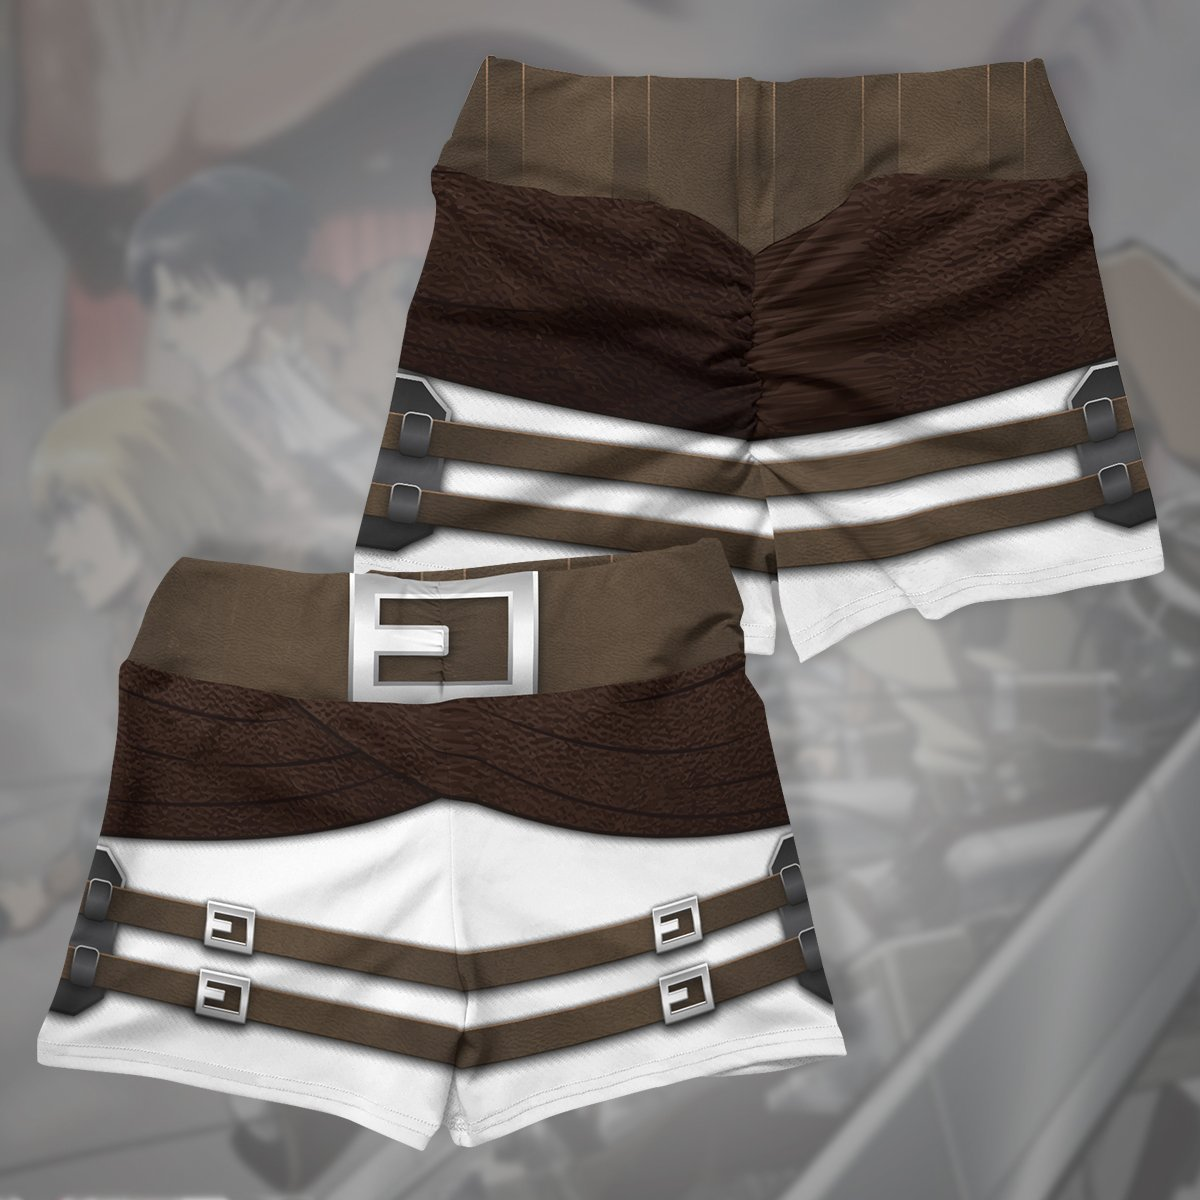 aot corps active wear set 793640 - Anime Swimsuits